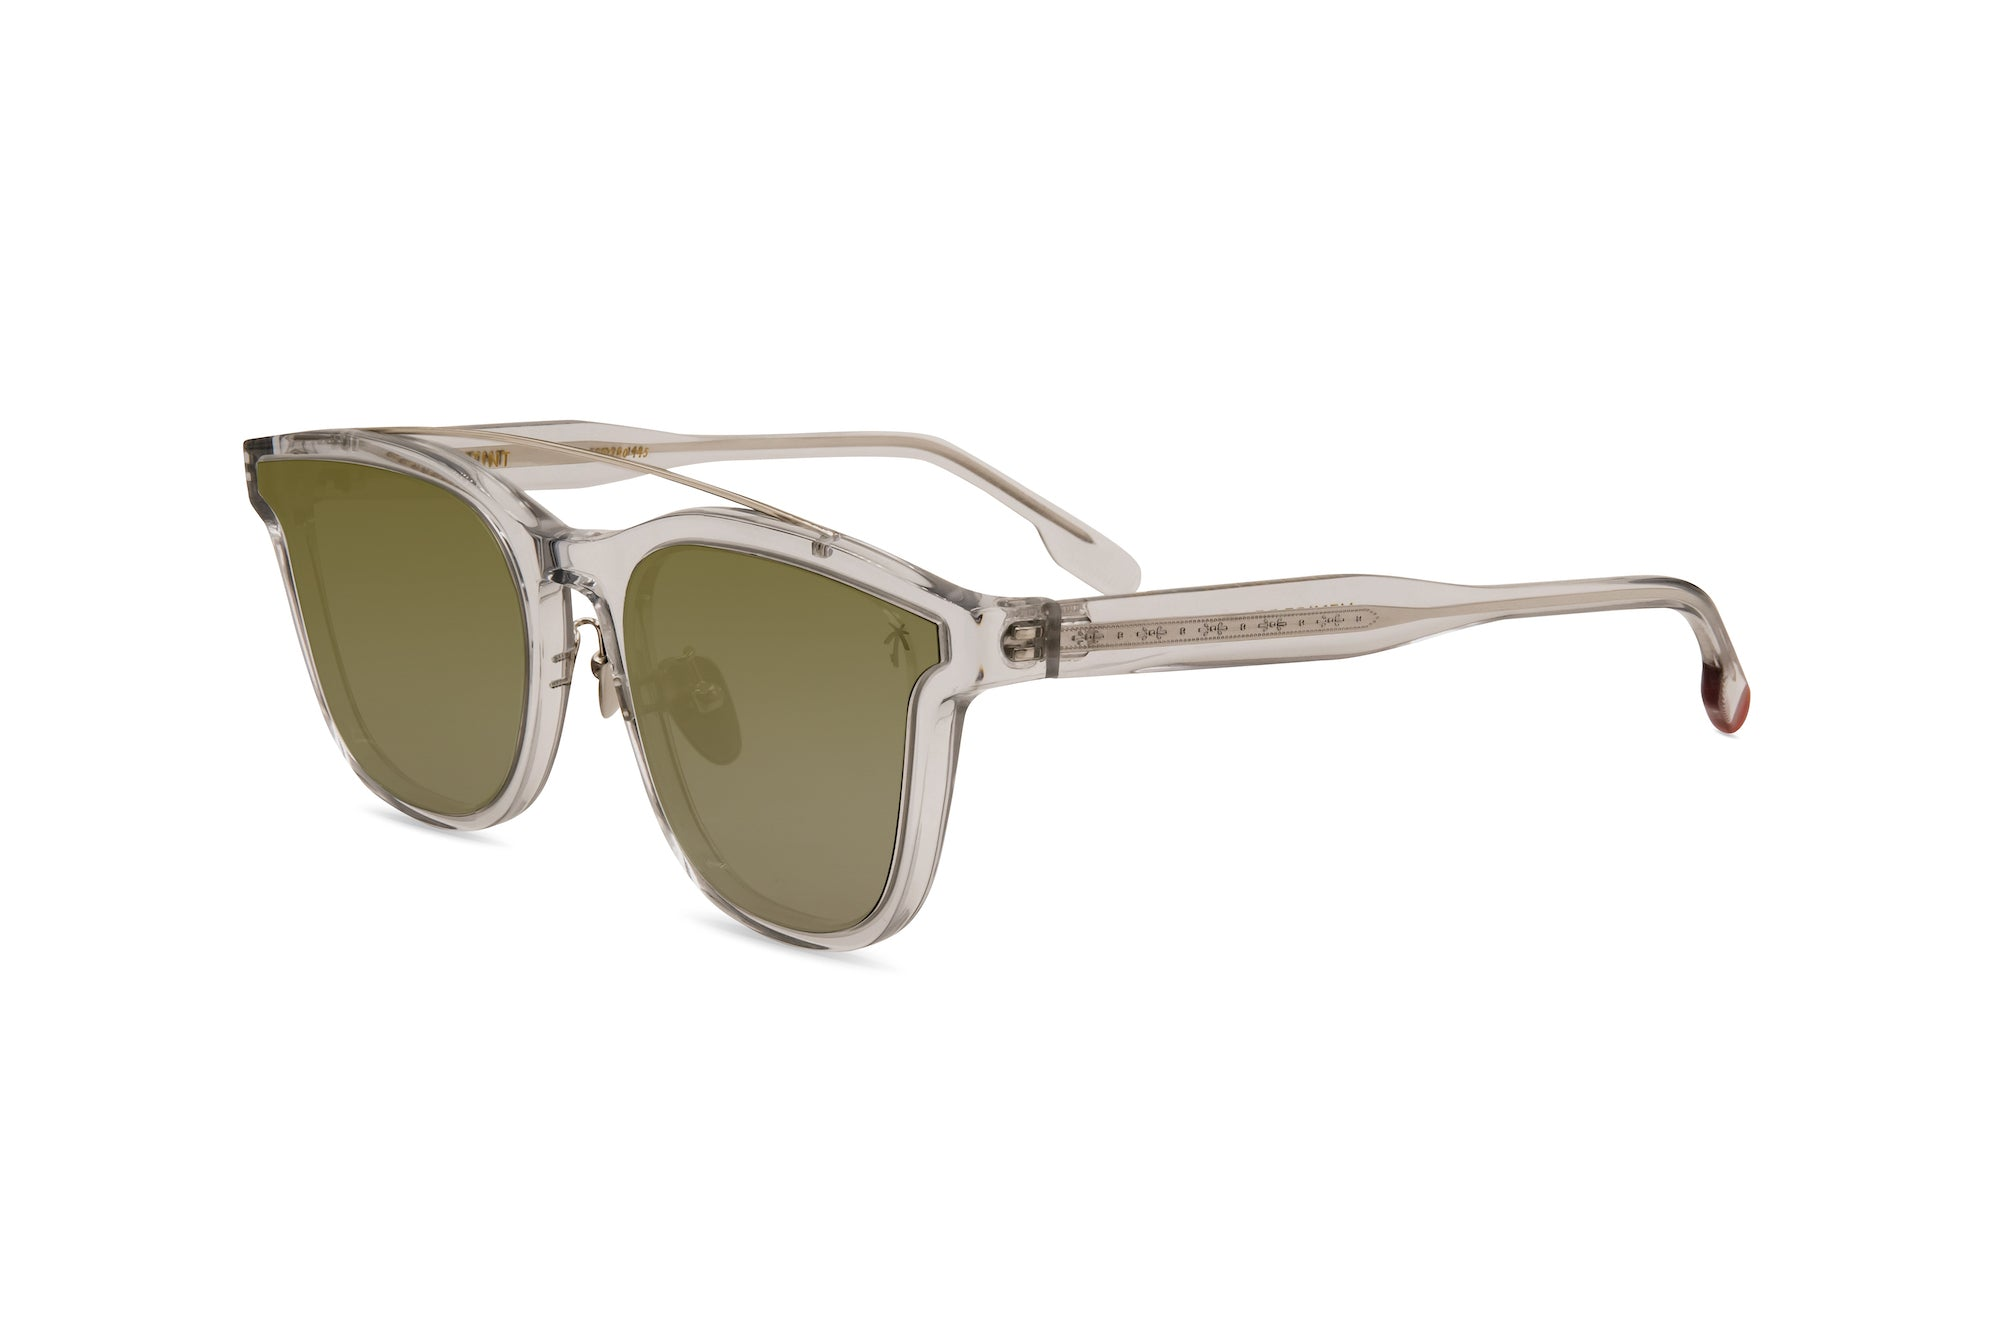 Venice Beach in Clear Frame - Peppertint - Designer sunglasses